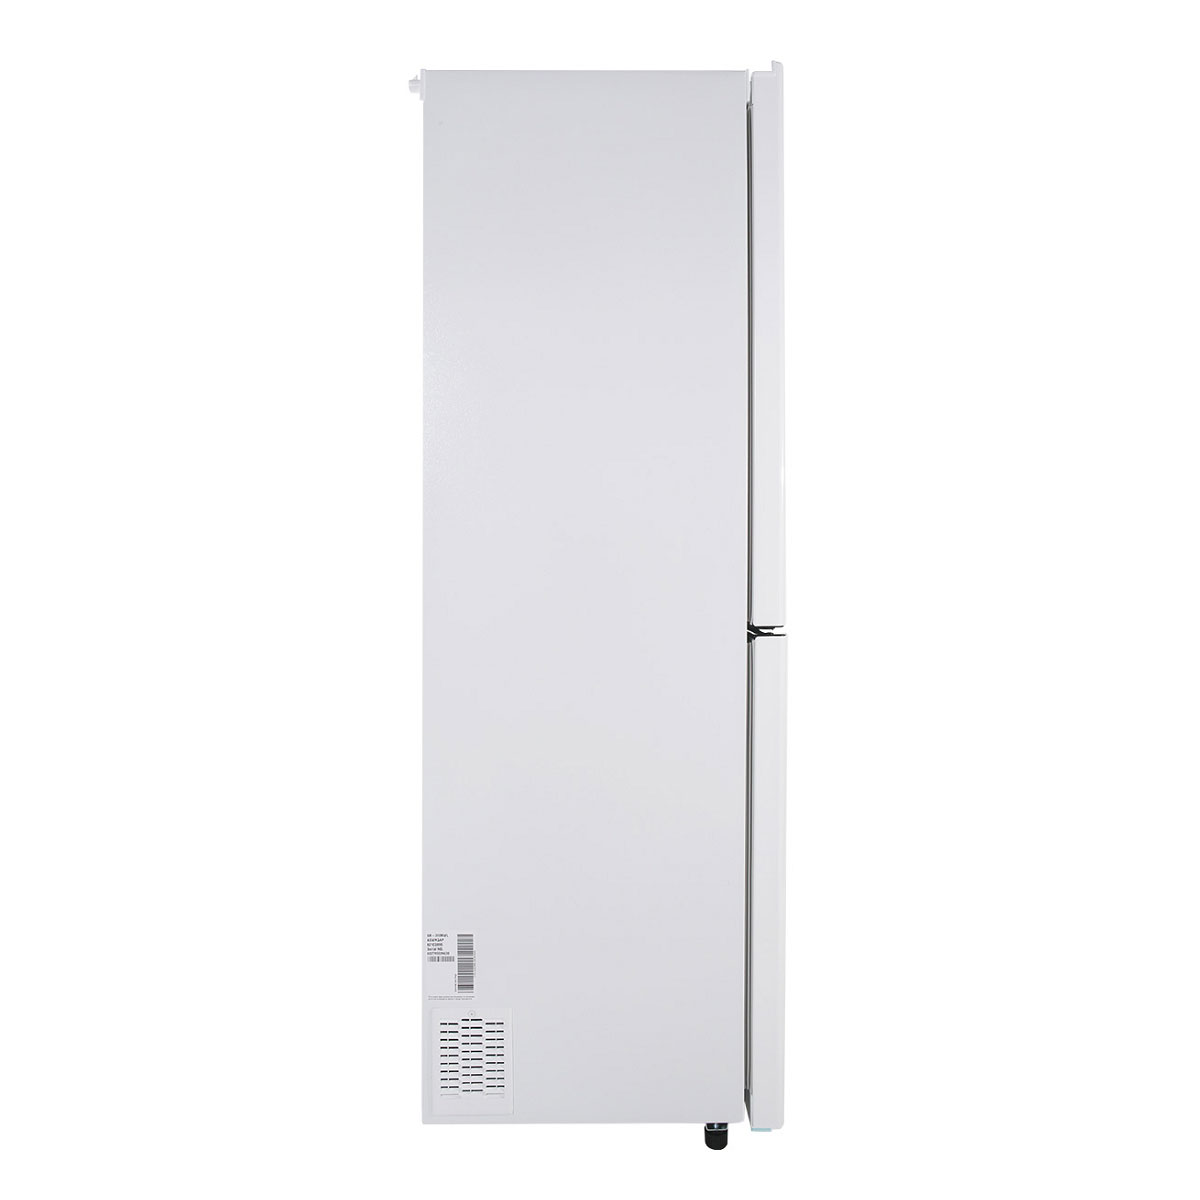 Lg Gb 310nwl 310l Bottom Mount Fridge Home Clearance